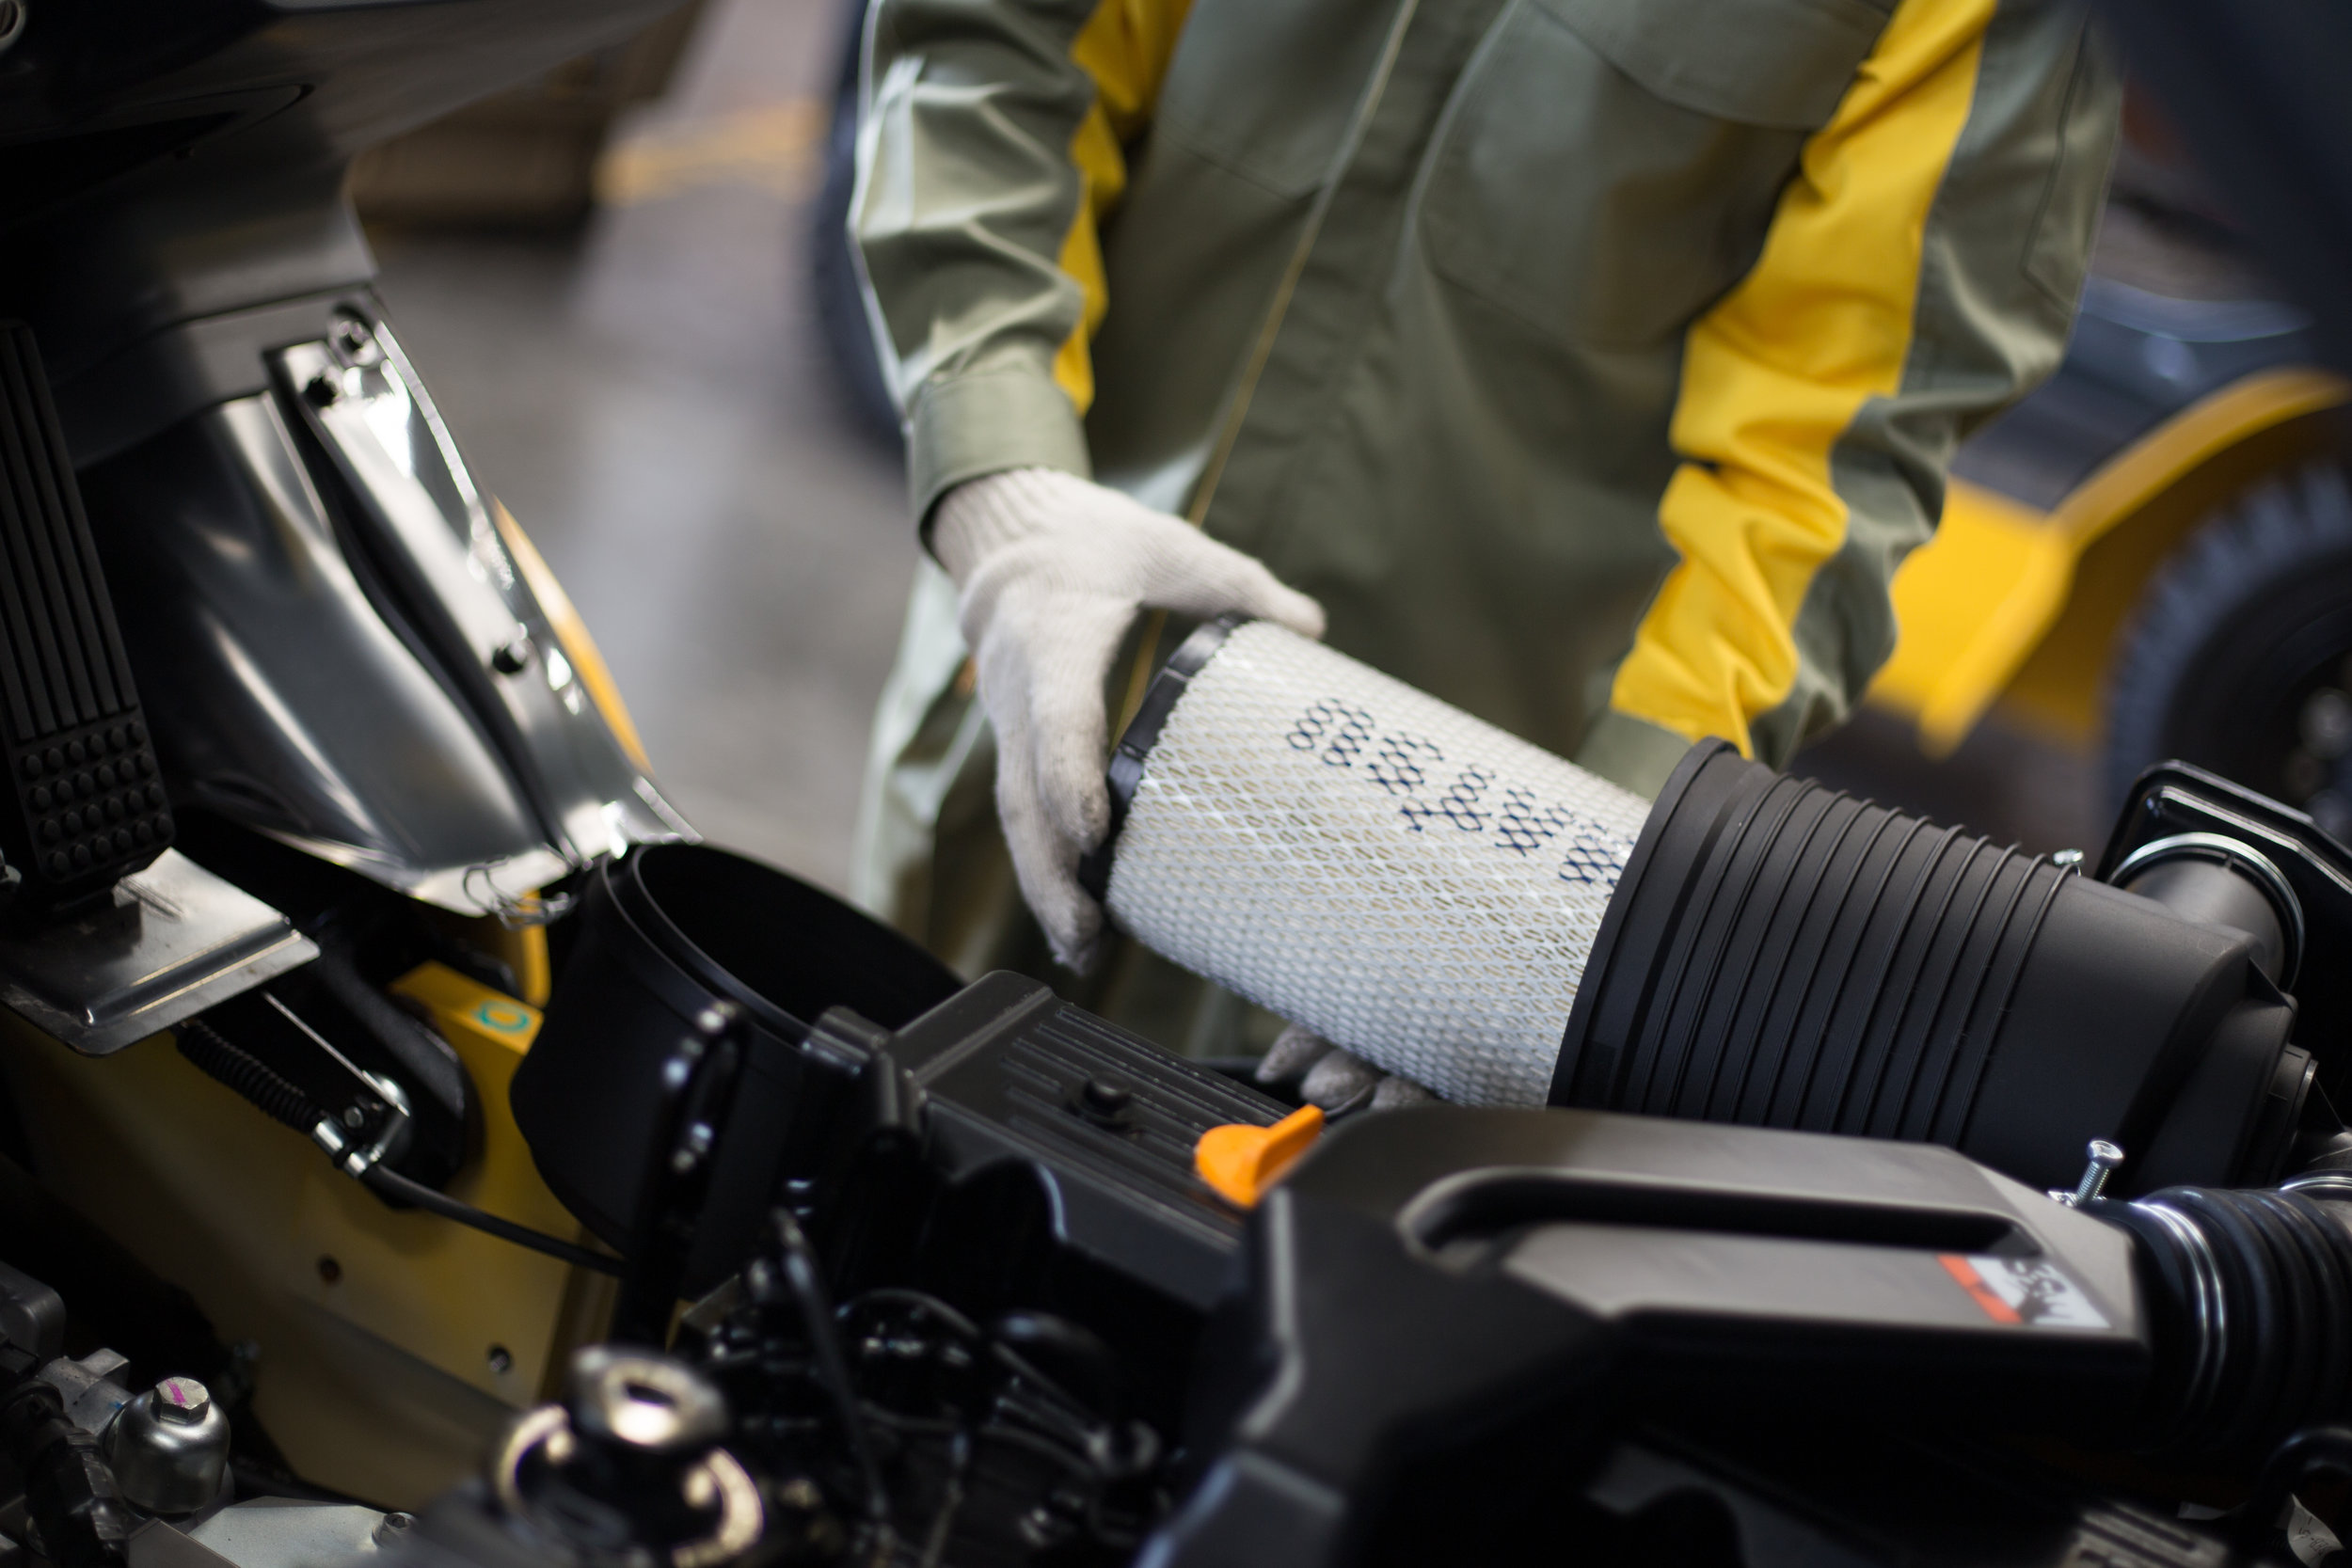 Preventative Maintenance Program - Trucks that are kept clean and serviced are less likely to have break downs and are more cost effective and provide longer service. Our trained technicians know that preventative maintenance is a key part of a forklift's success in any application.